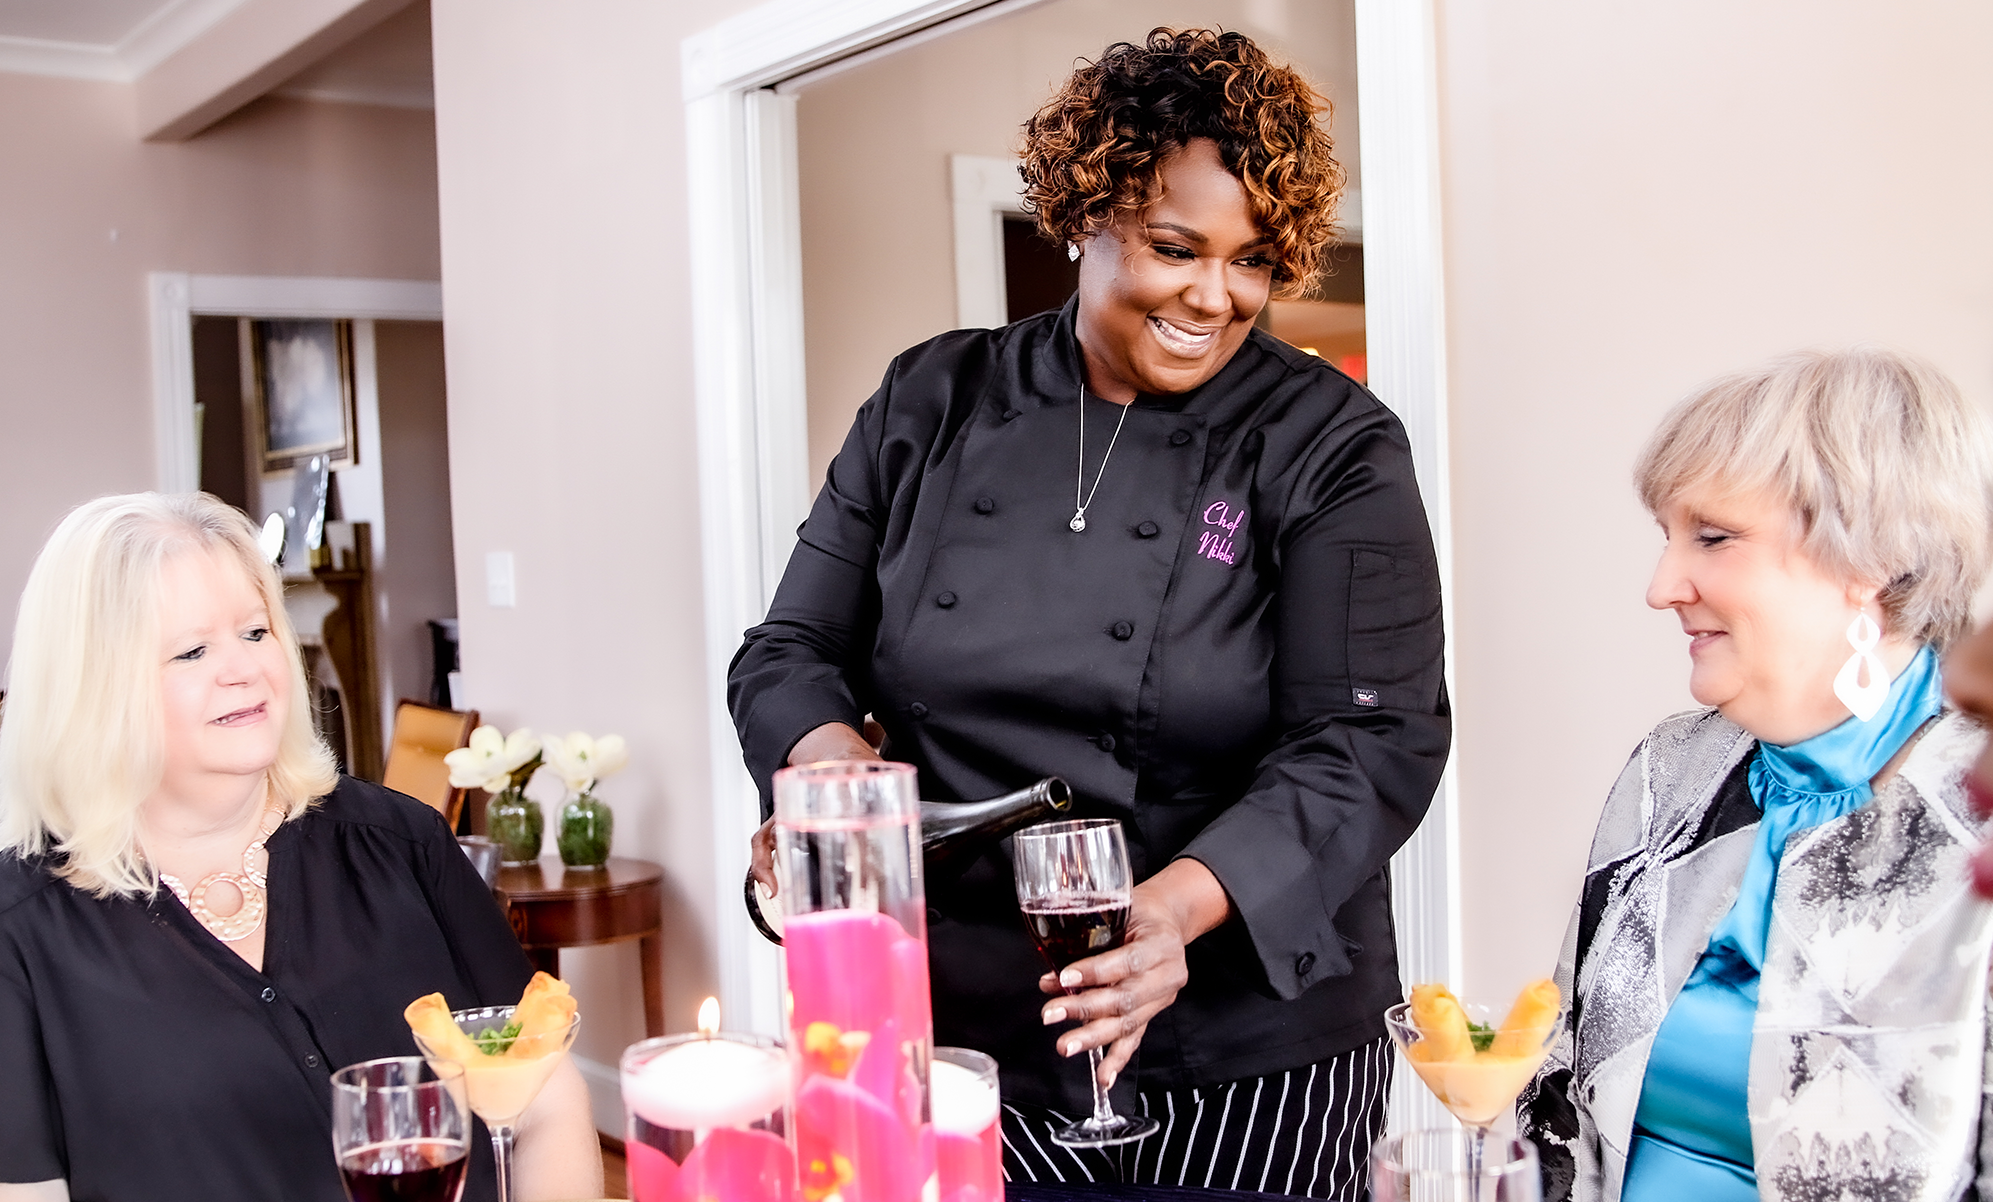 Chef Nikki pouring wine with two white female diners